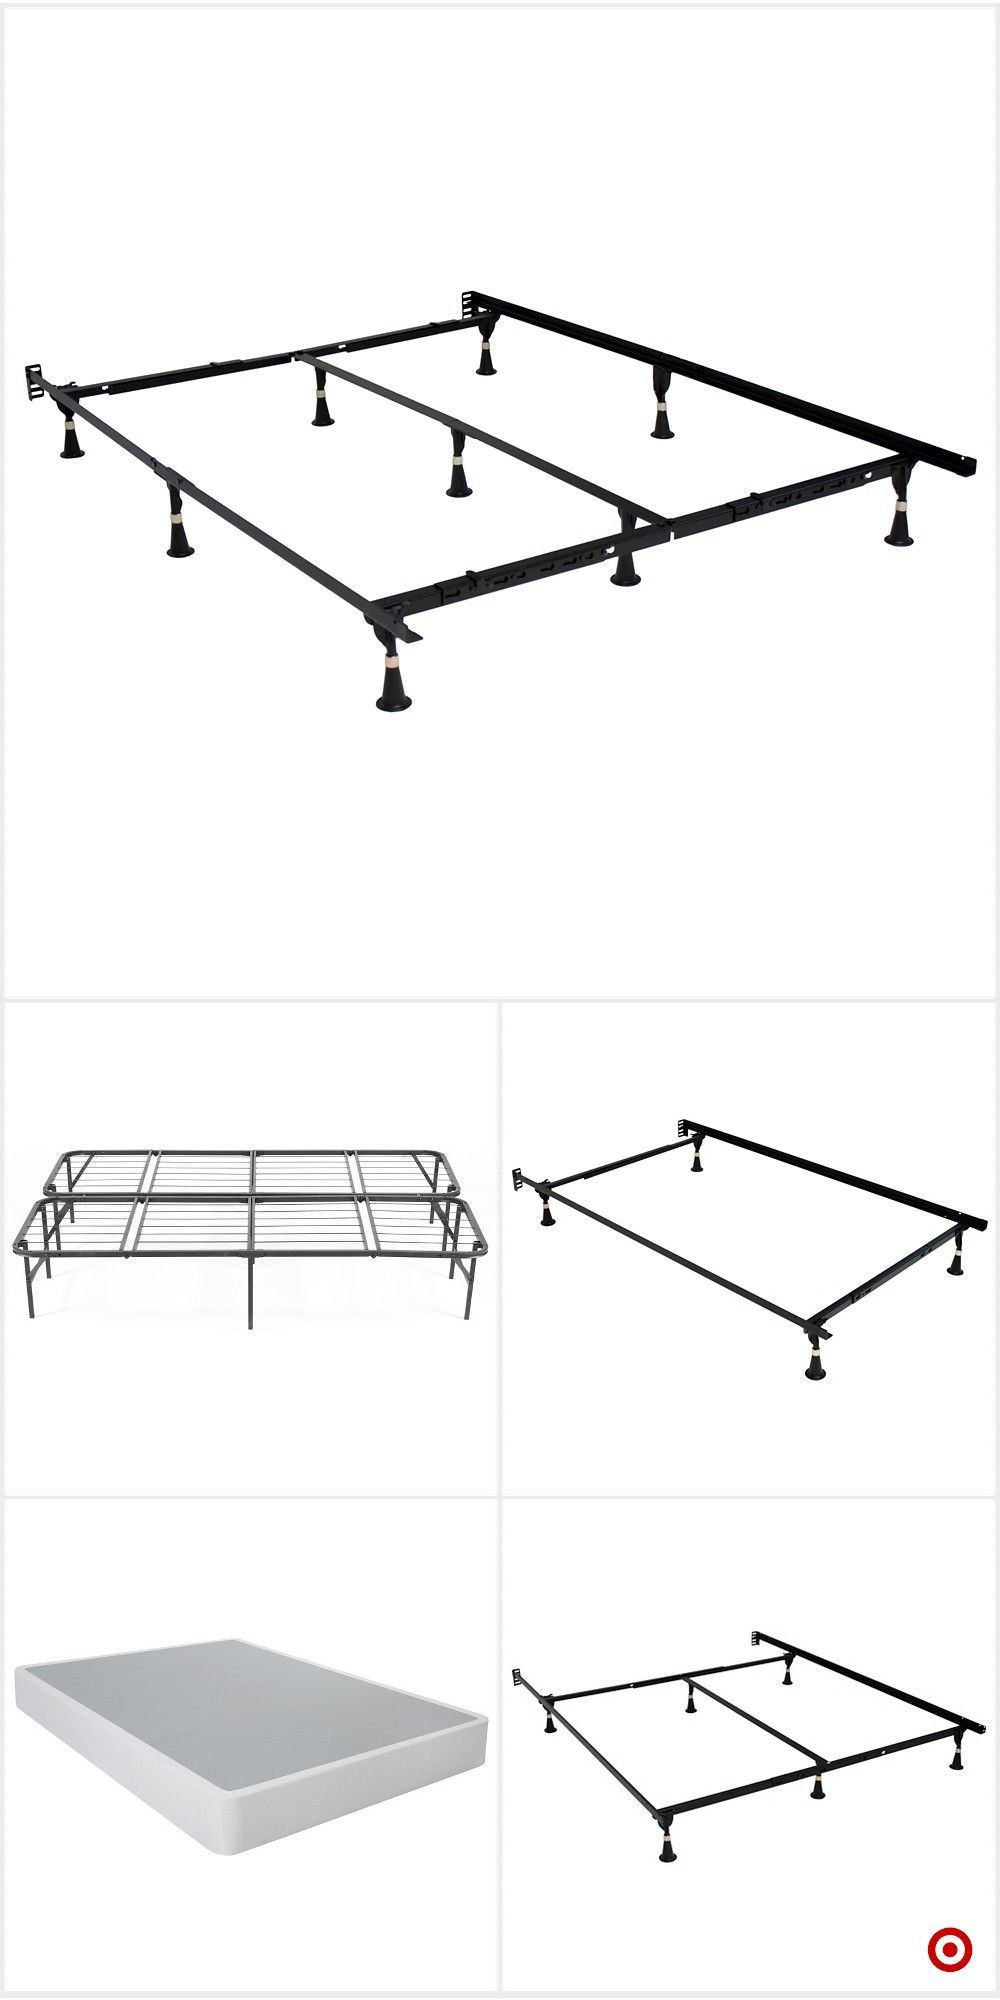 Luggage Rack Target Stunning Shop Target For Bed Frame You Will Love At Great Low Pricesfree Decorating Inspiration